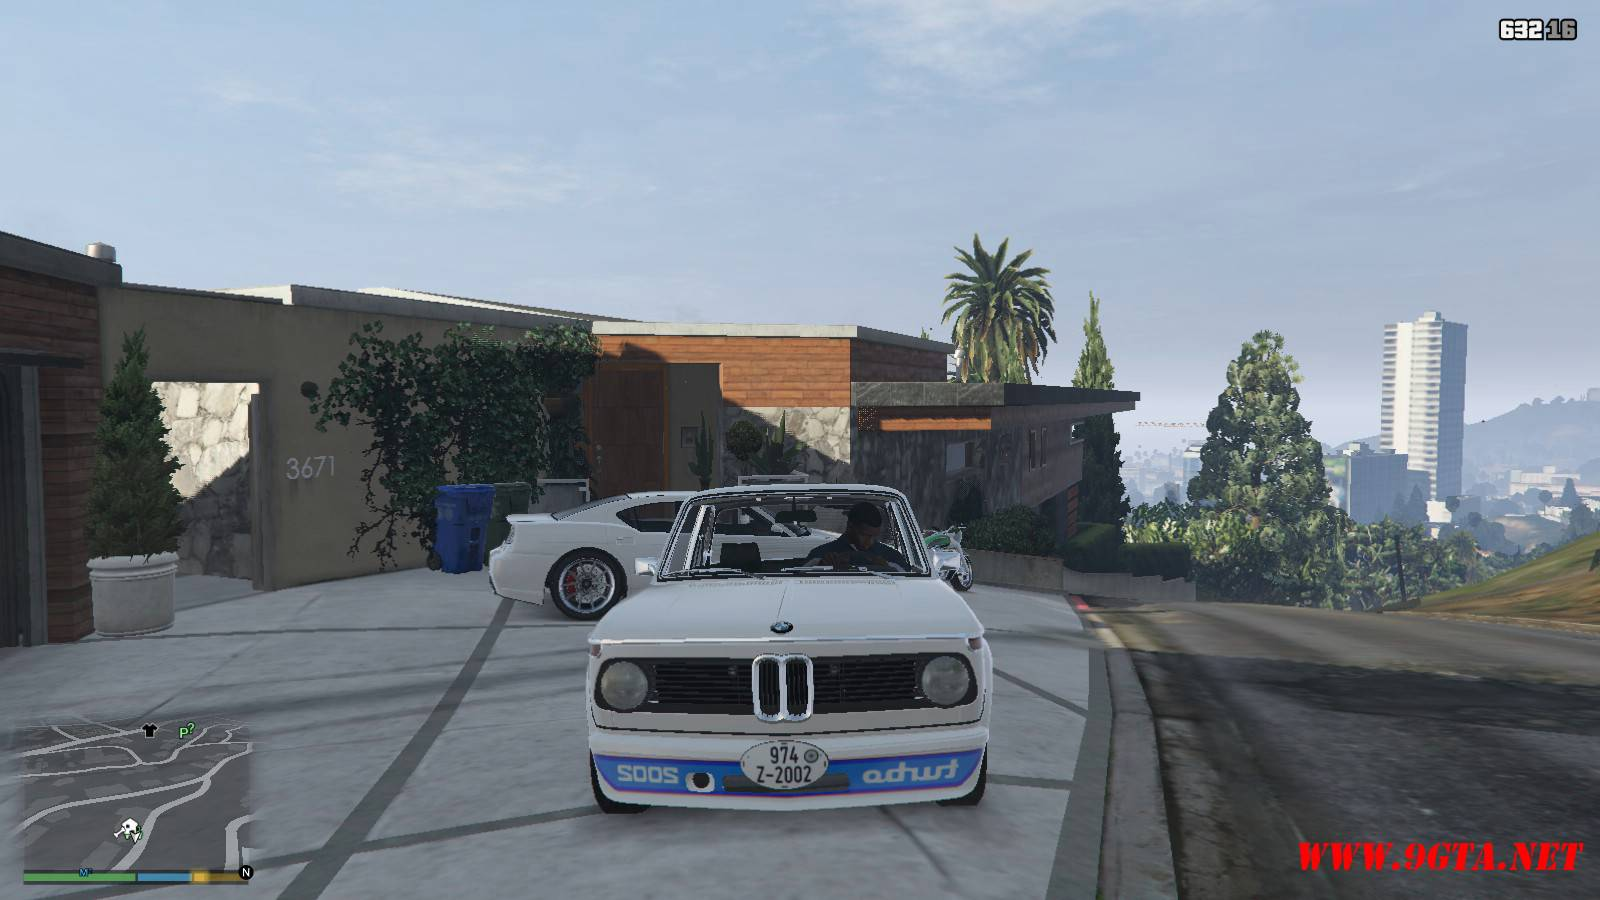 2002 BMW Turbo Mod For GTA5 (11)